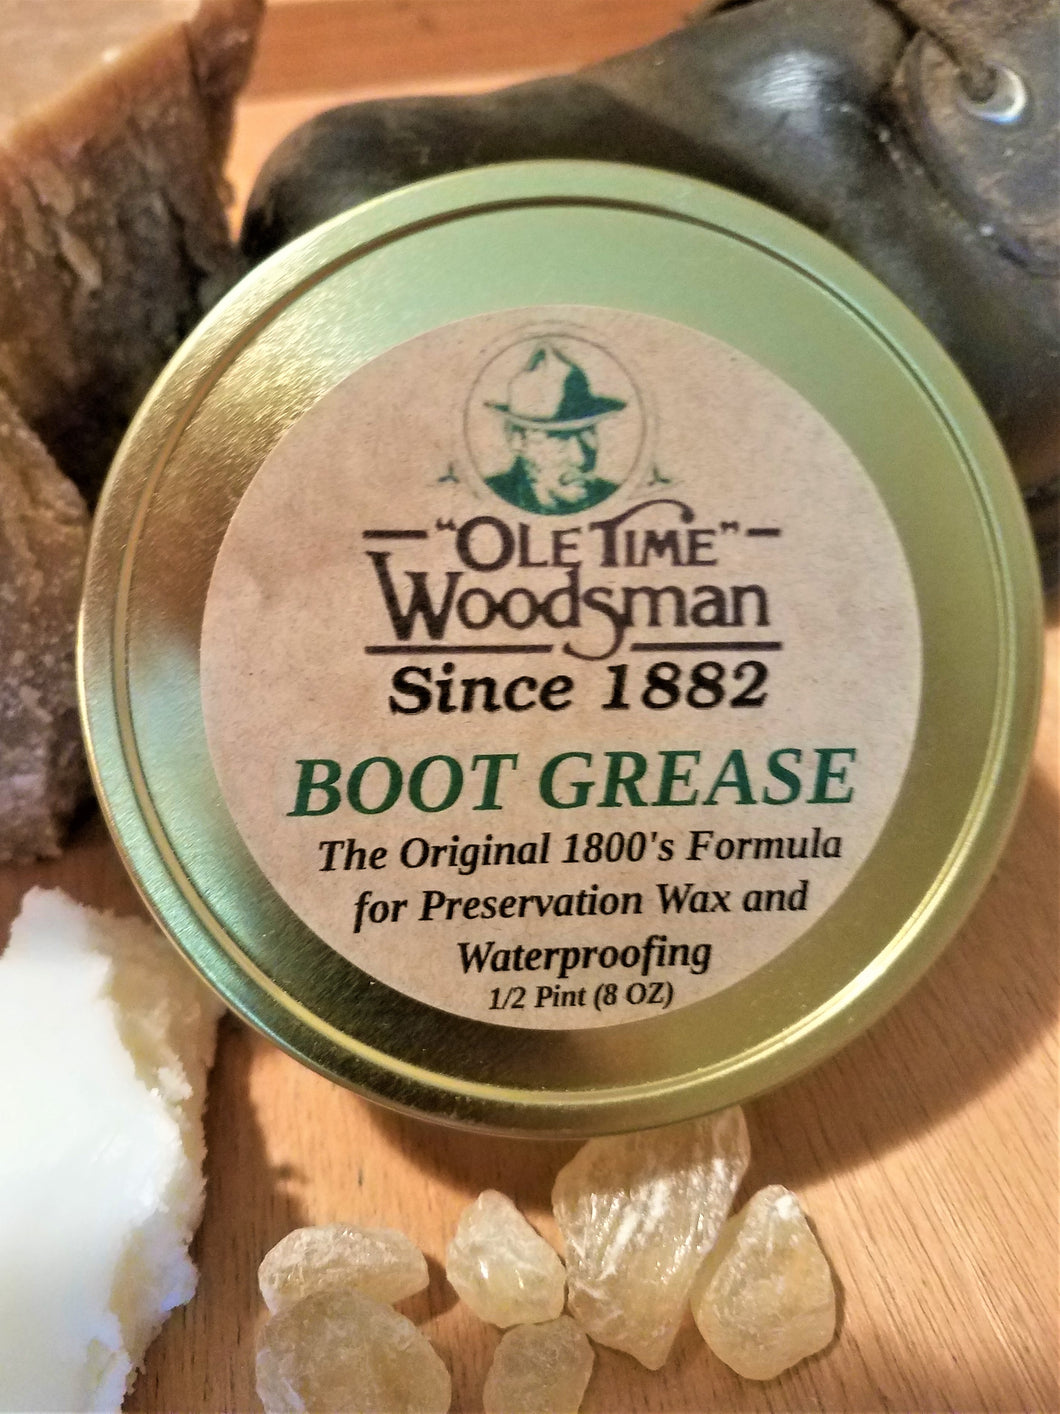 Ole Time Woodsman Boot Grease. The Original 1800's Formula for Presevation Wax and Waterproofing. (Free shipping in USA) - Ole Time Woodsman Fly Dope